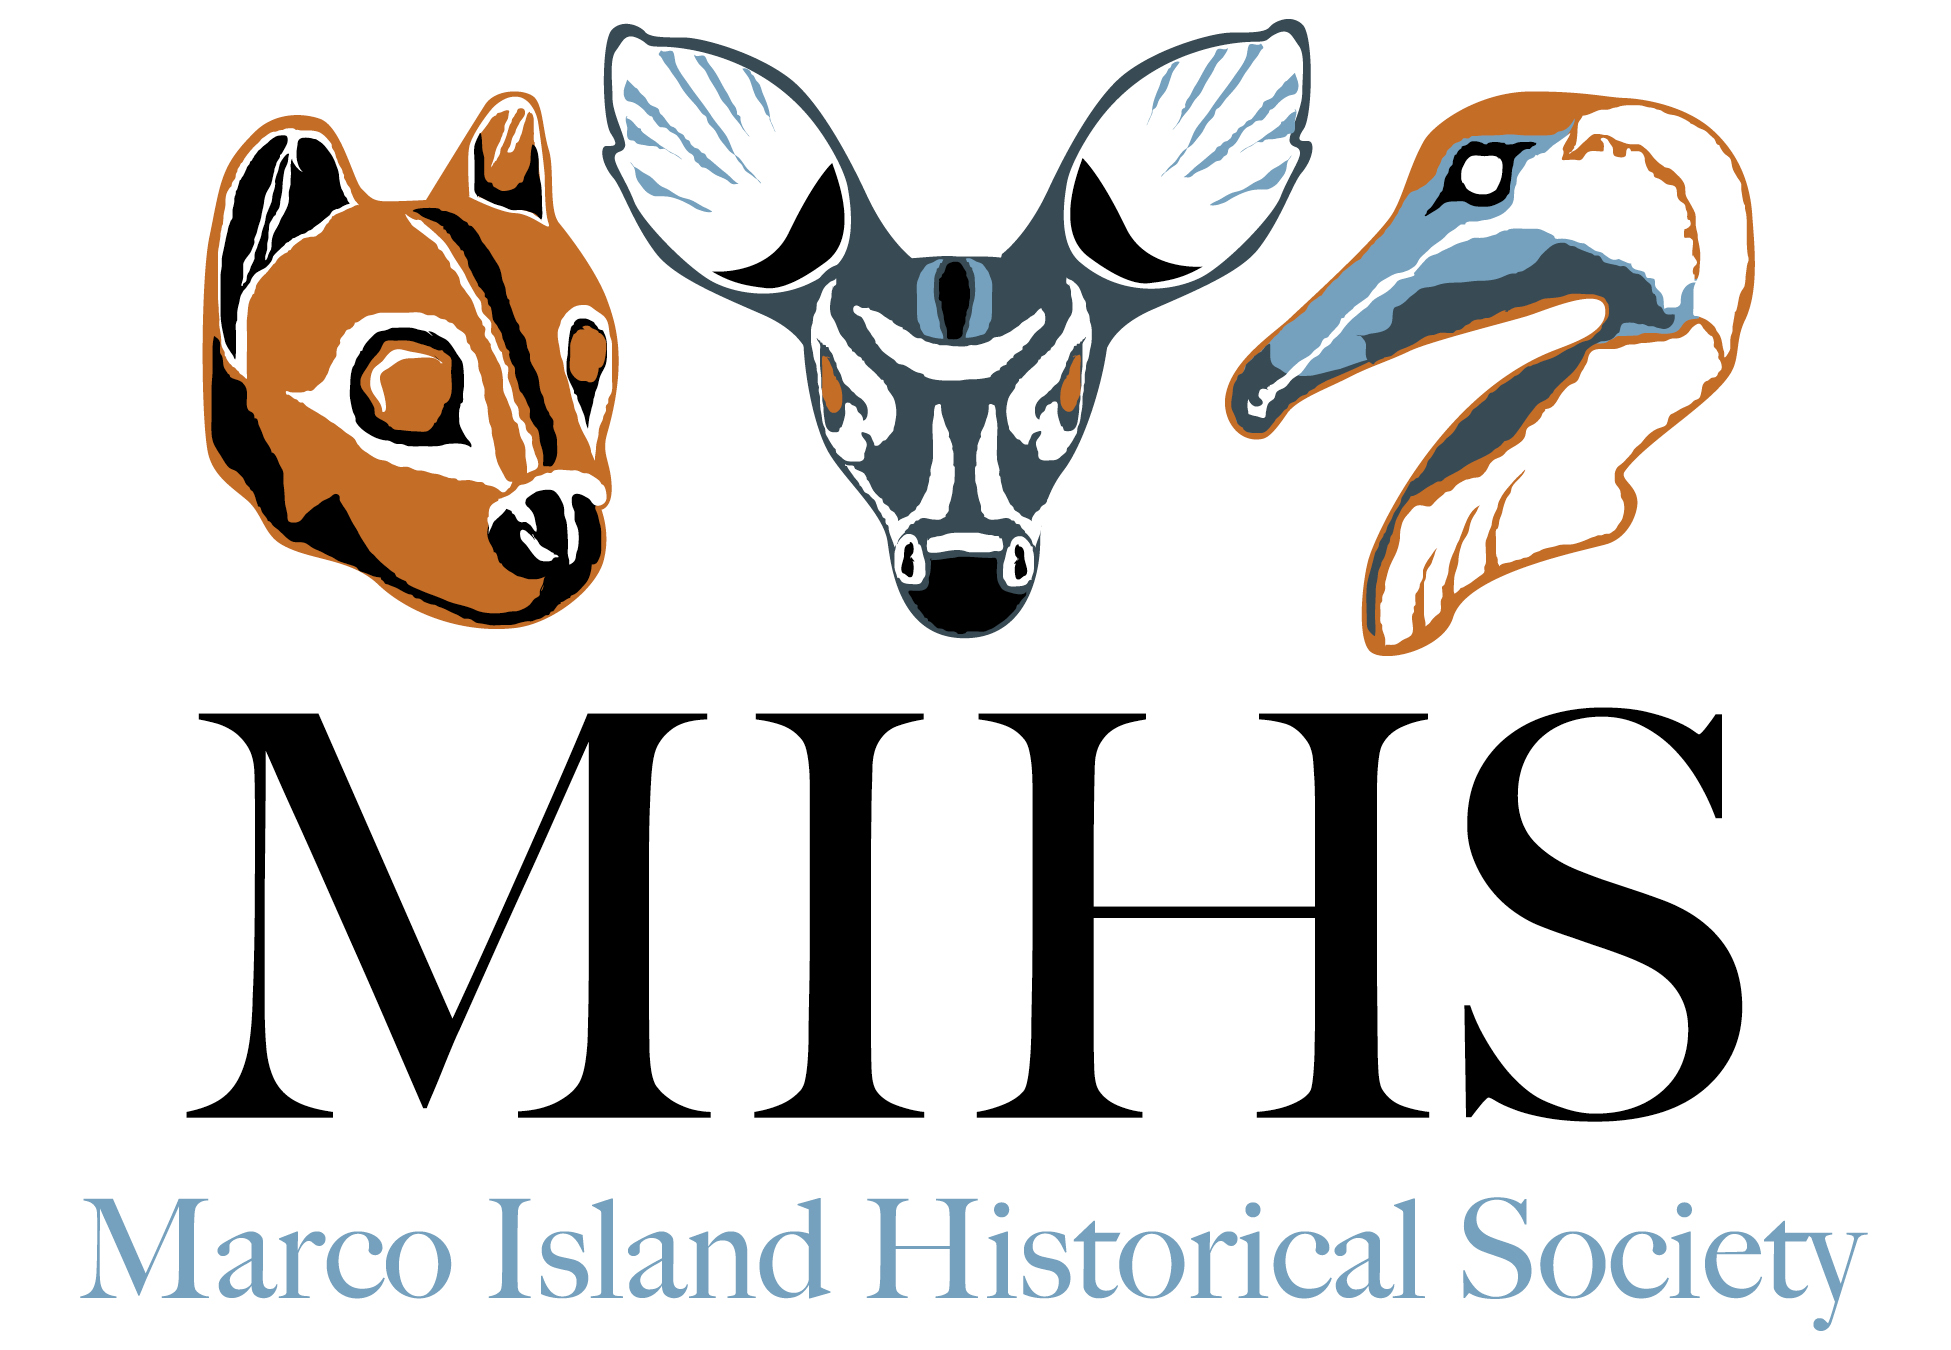 Marco Island Historical Society